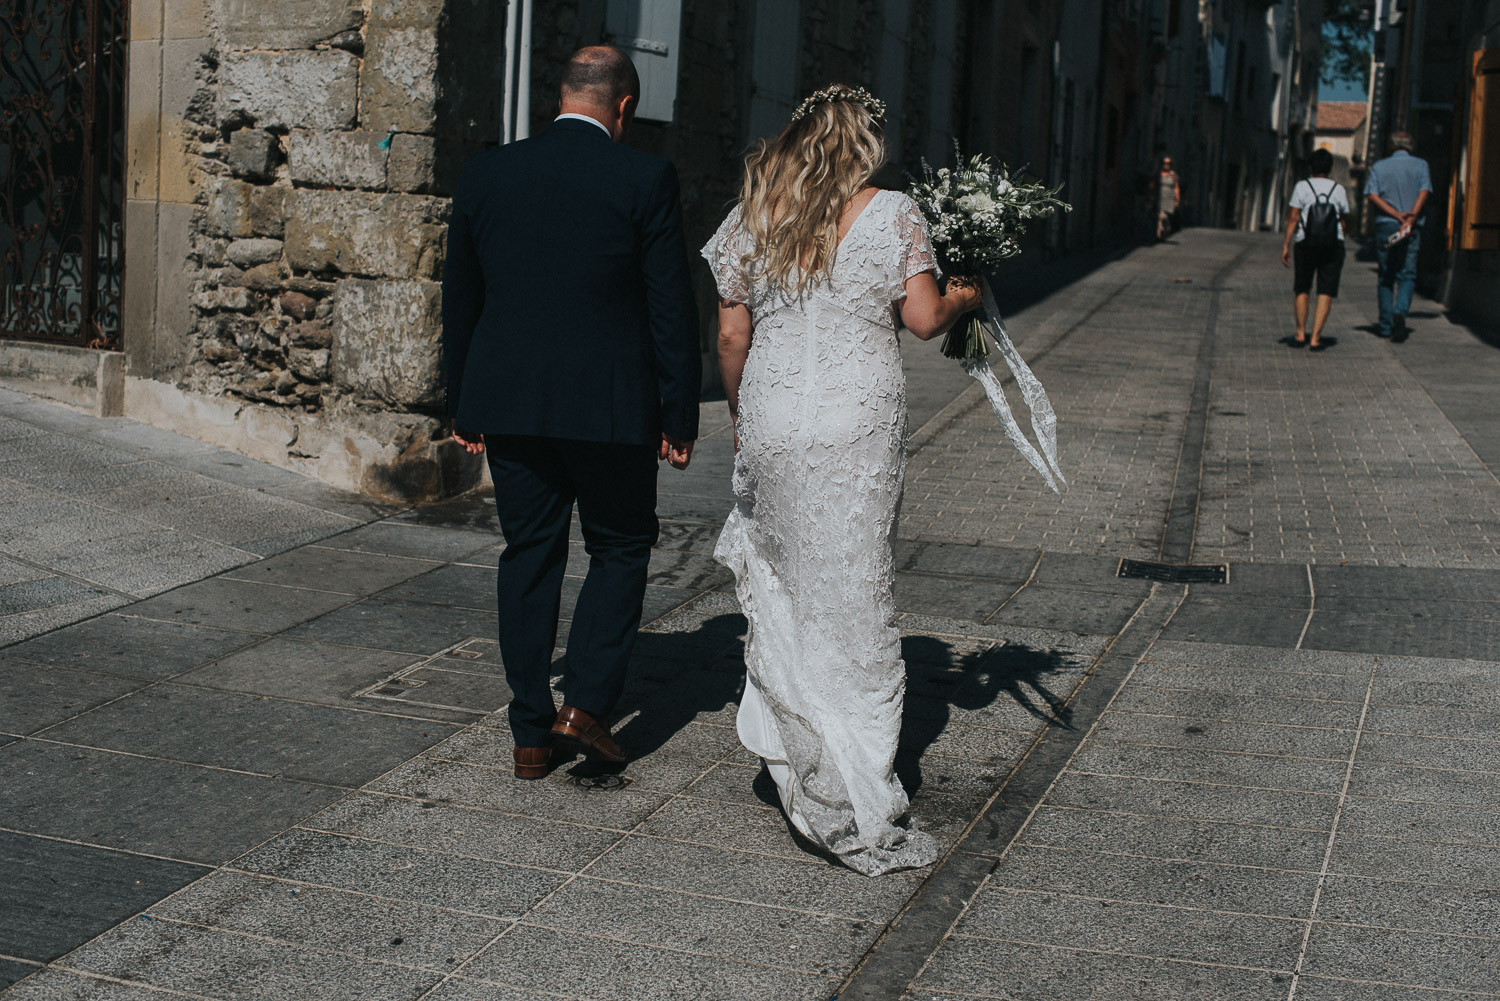 chateau_canet_carcassonne_wedding_katy_webb_photography_france_UK141